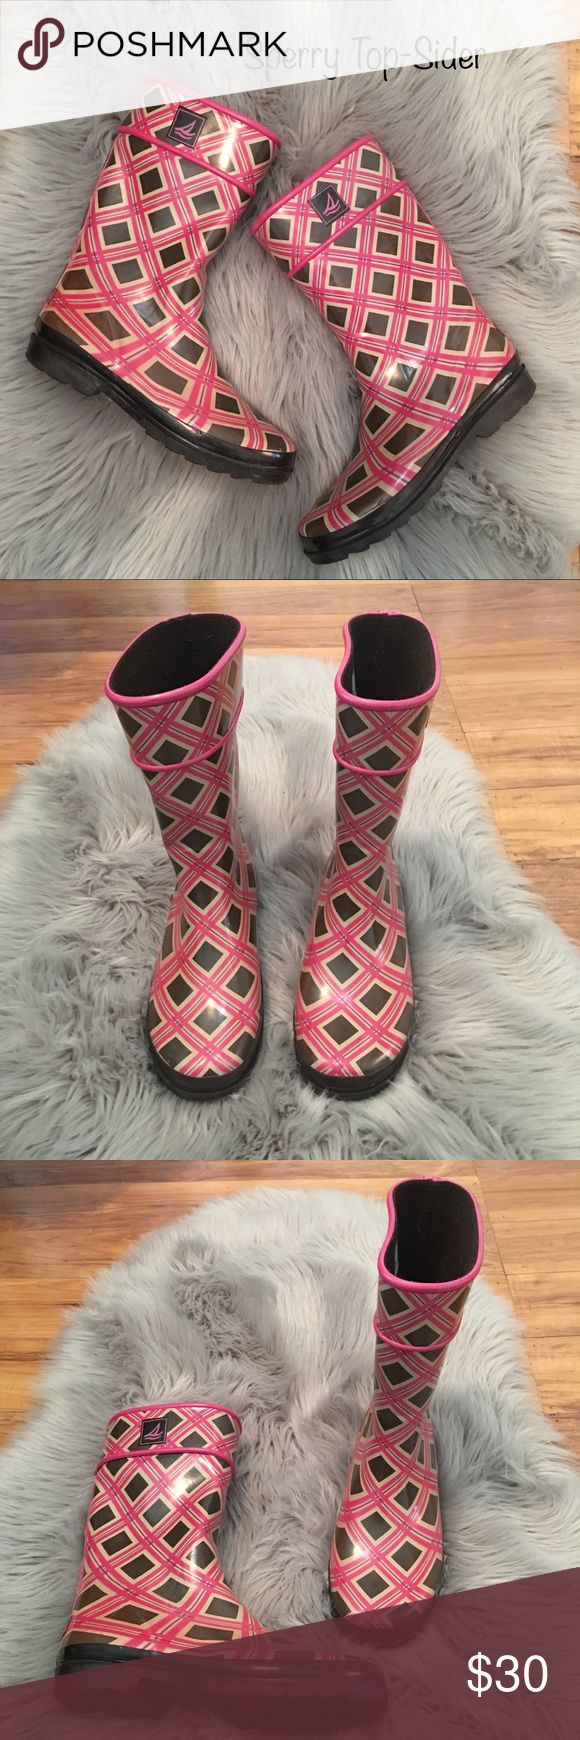 🚨FLASH SALE🚨 Sperry Top-Sider Rain Boots⛵️ I'm super great condition with absolutely no flaws sperry rain boots. They are very cozy from the inside. Originally they are size 5 but fits perfect on a size 7. Sperry Top-Sider Shoes Winter & Rain Boots